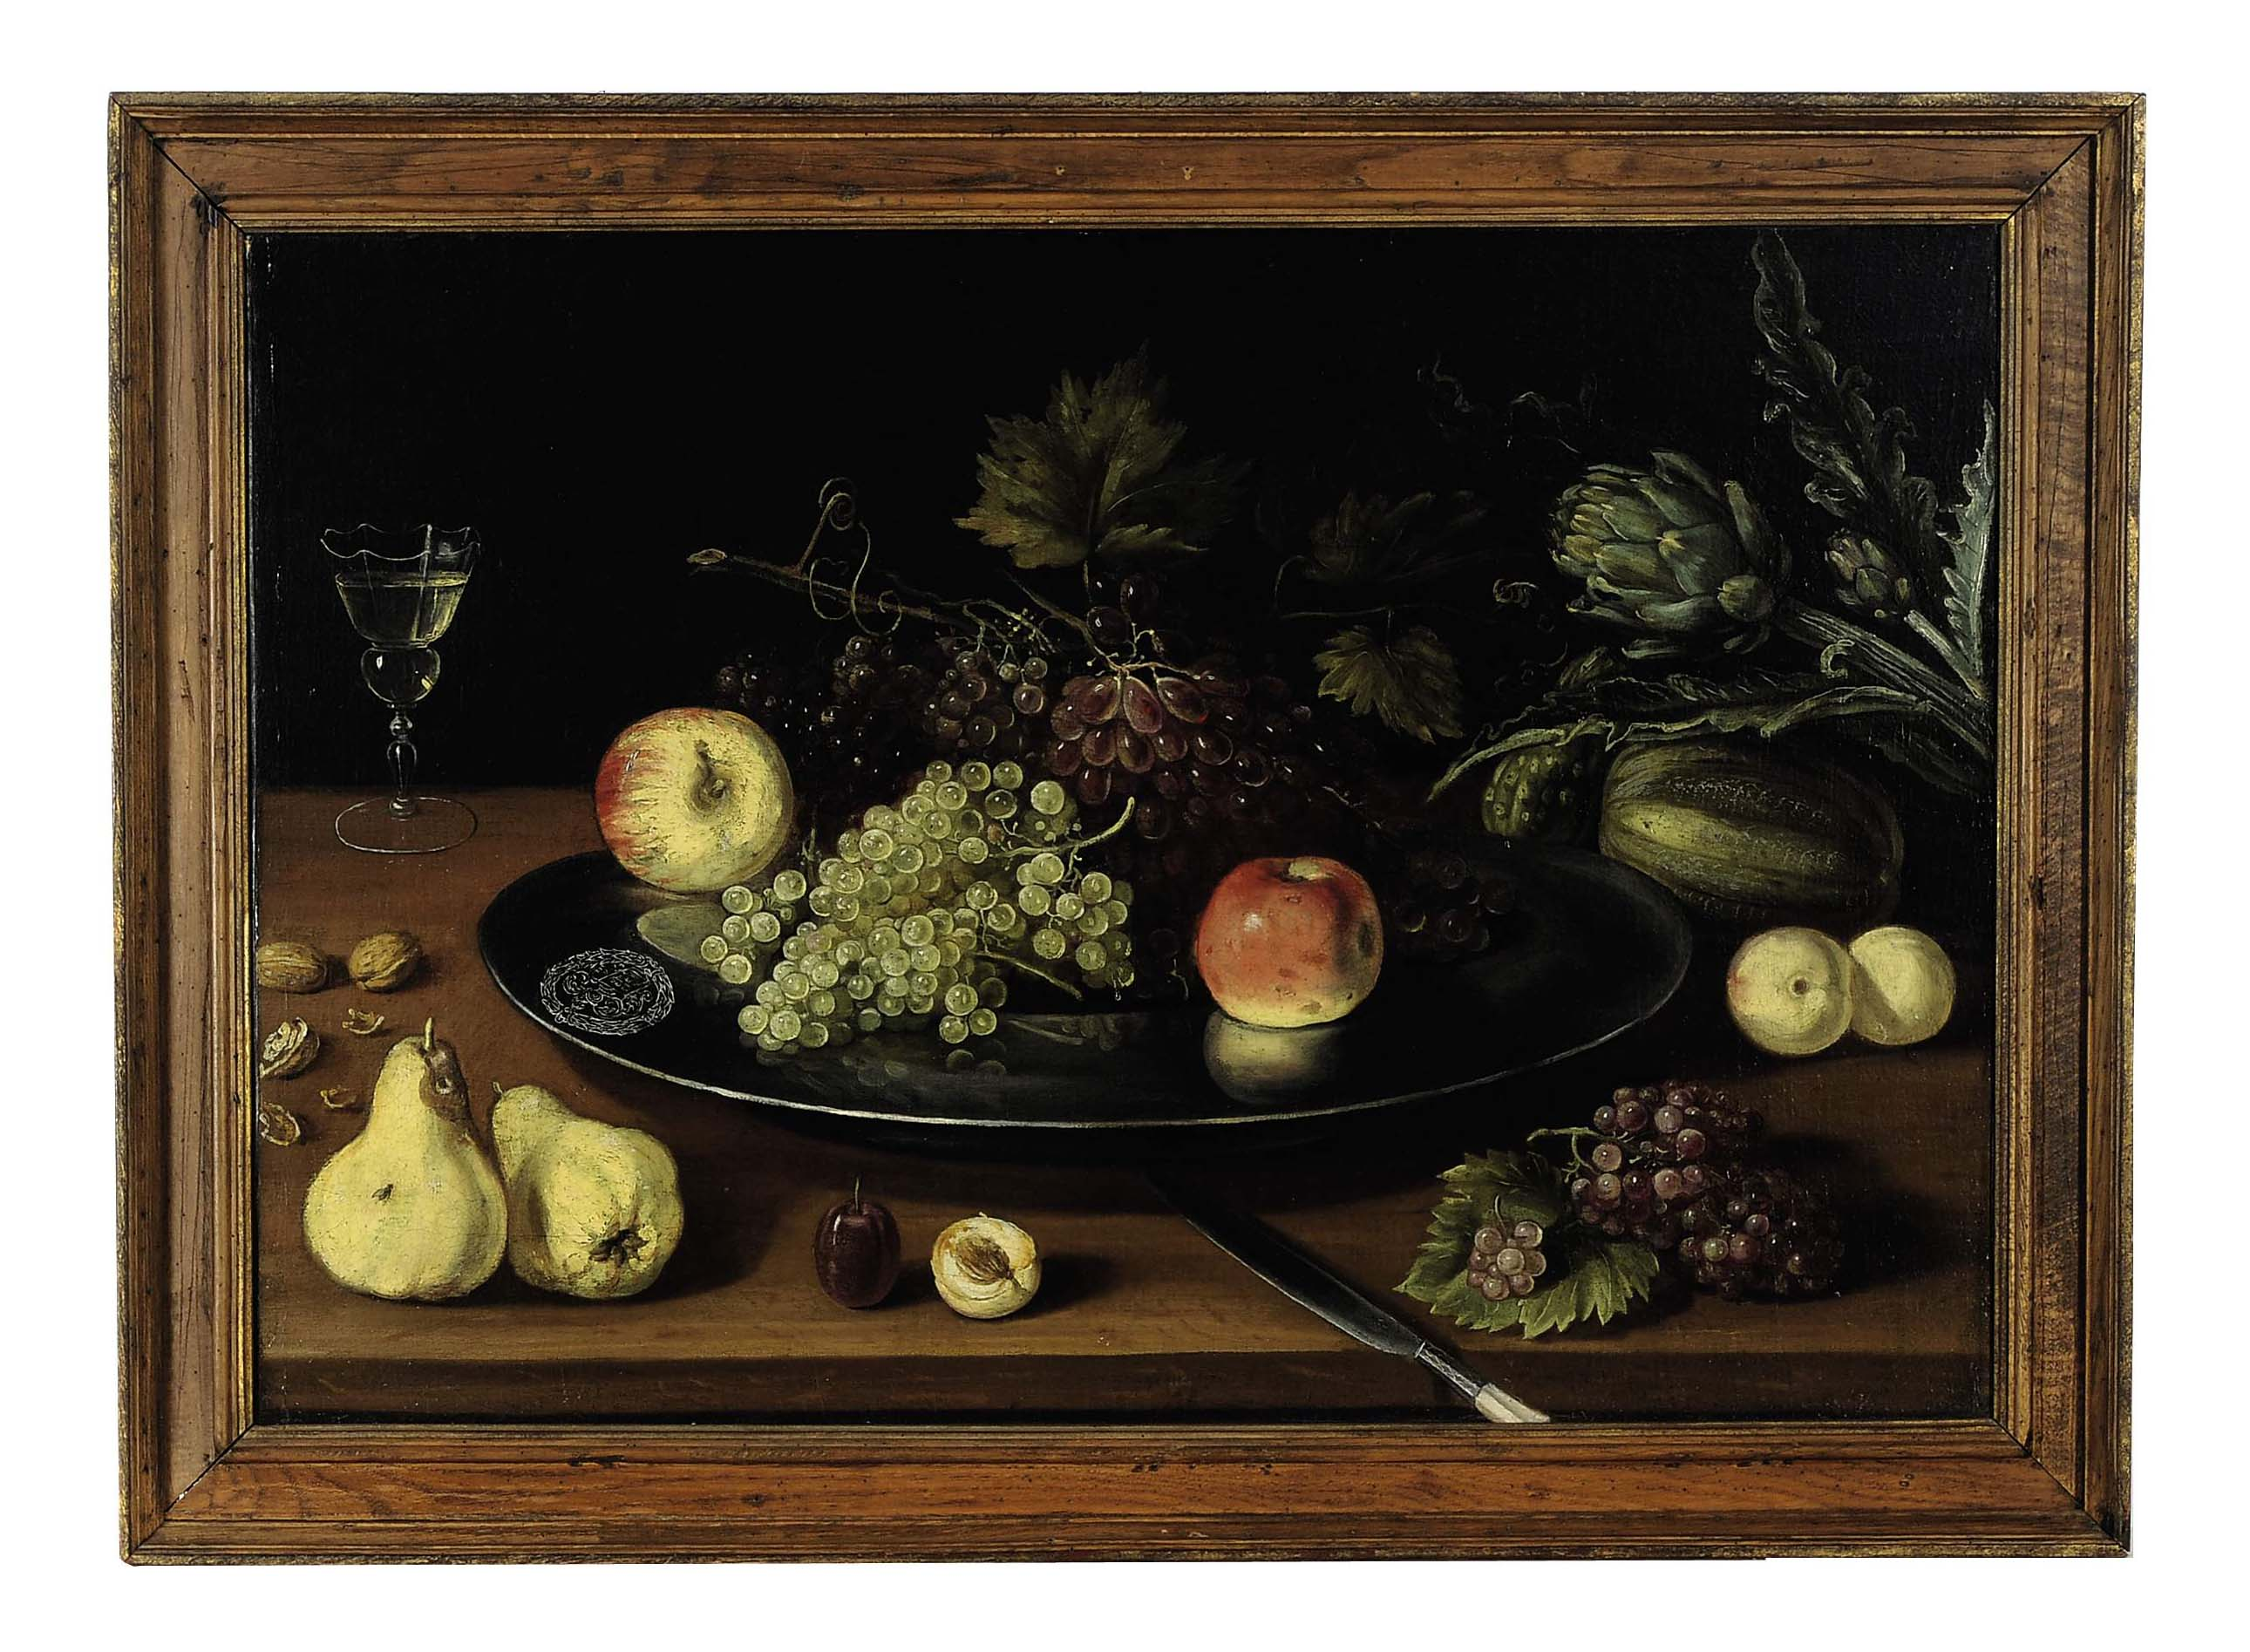 Still life of fruit, walnuts, artichokes and a glass of wine on a table